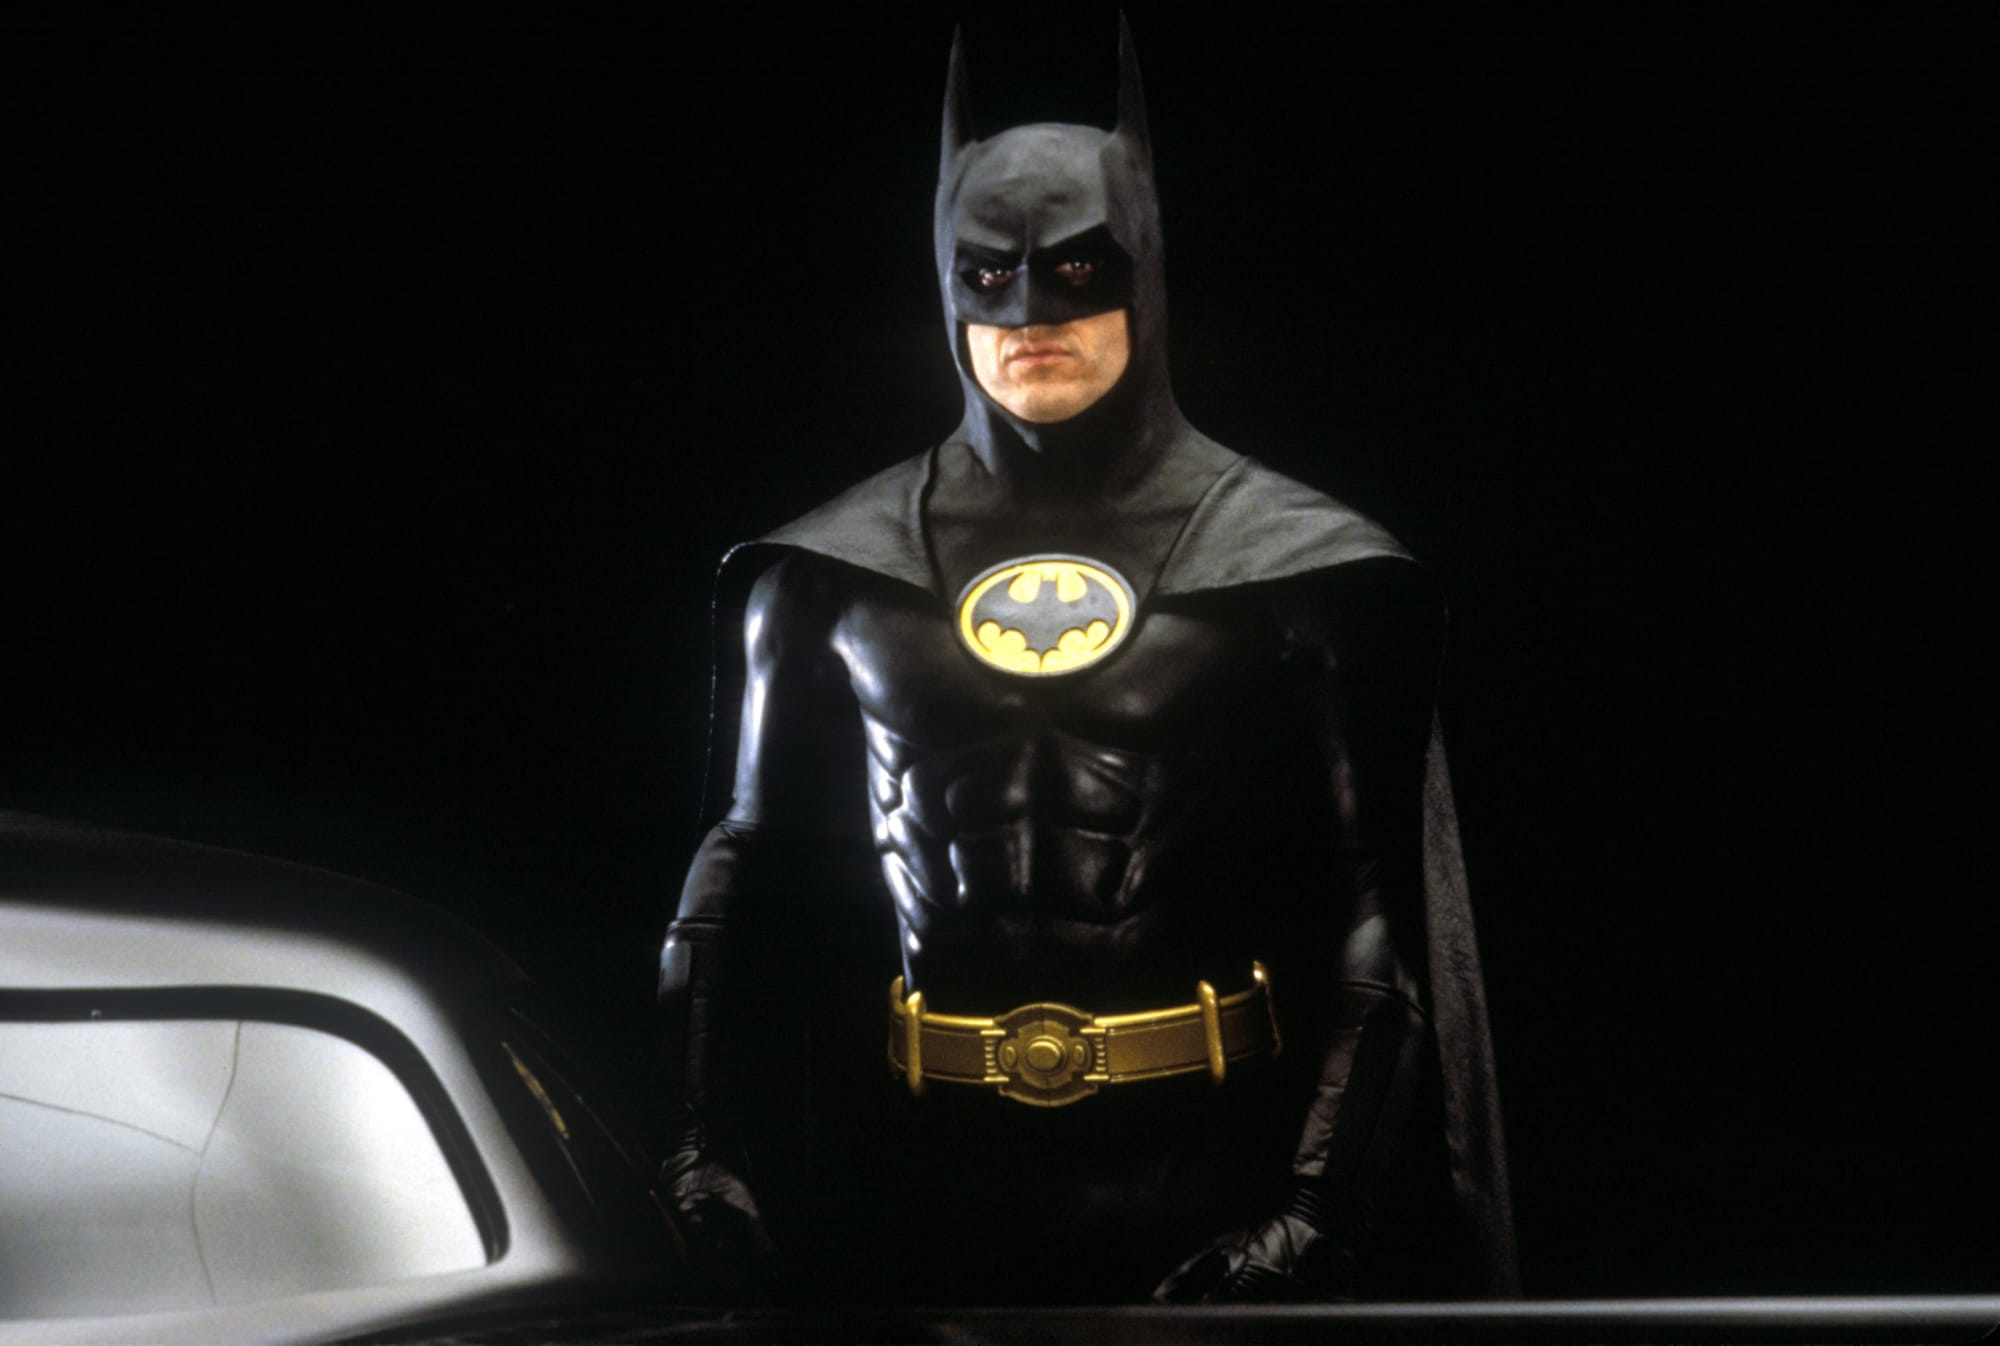 Rumor: Michael Keaton to star in Batman TV series on HBO Max